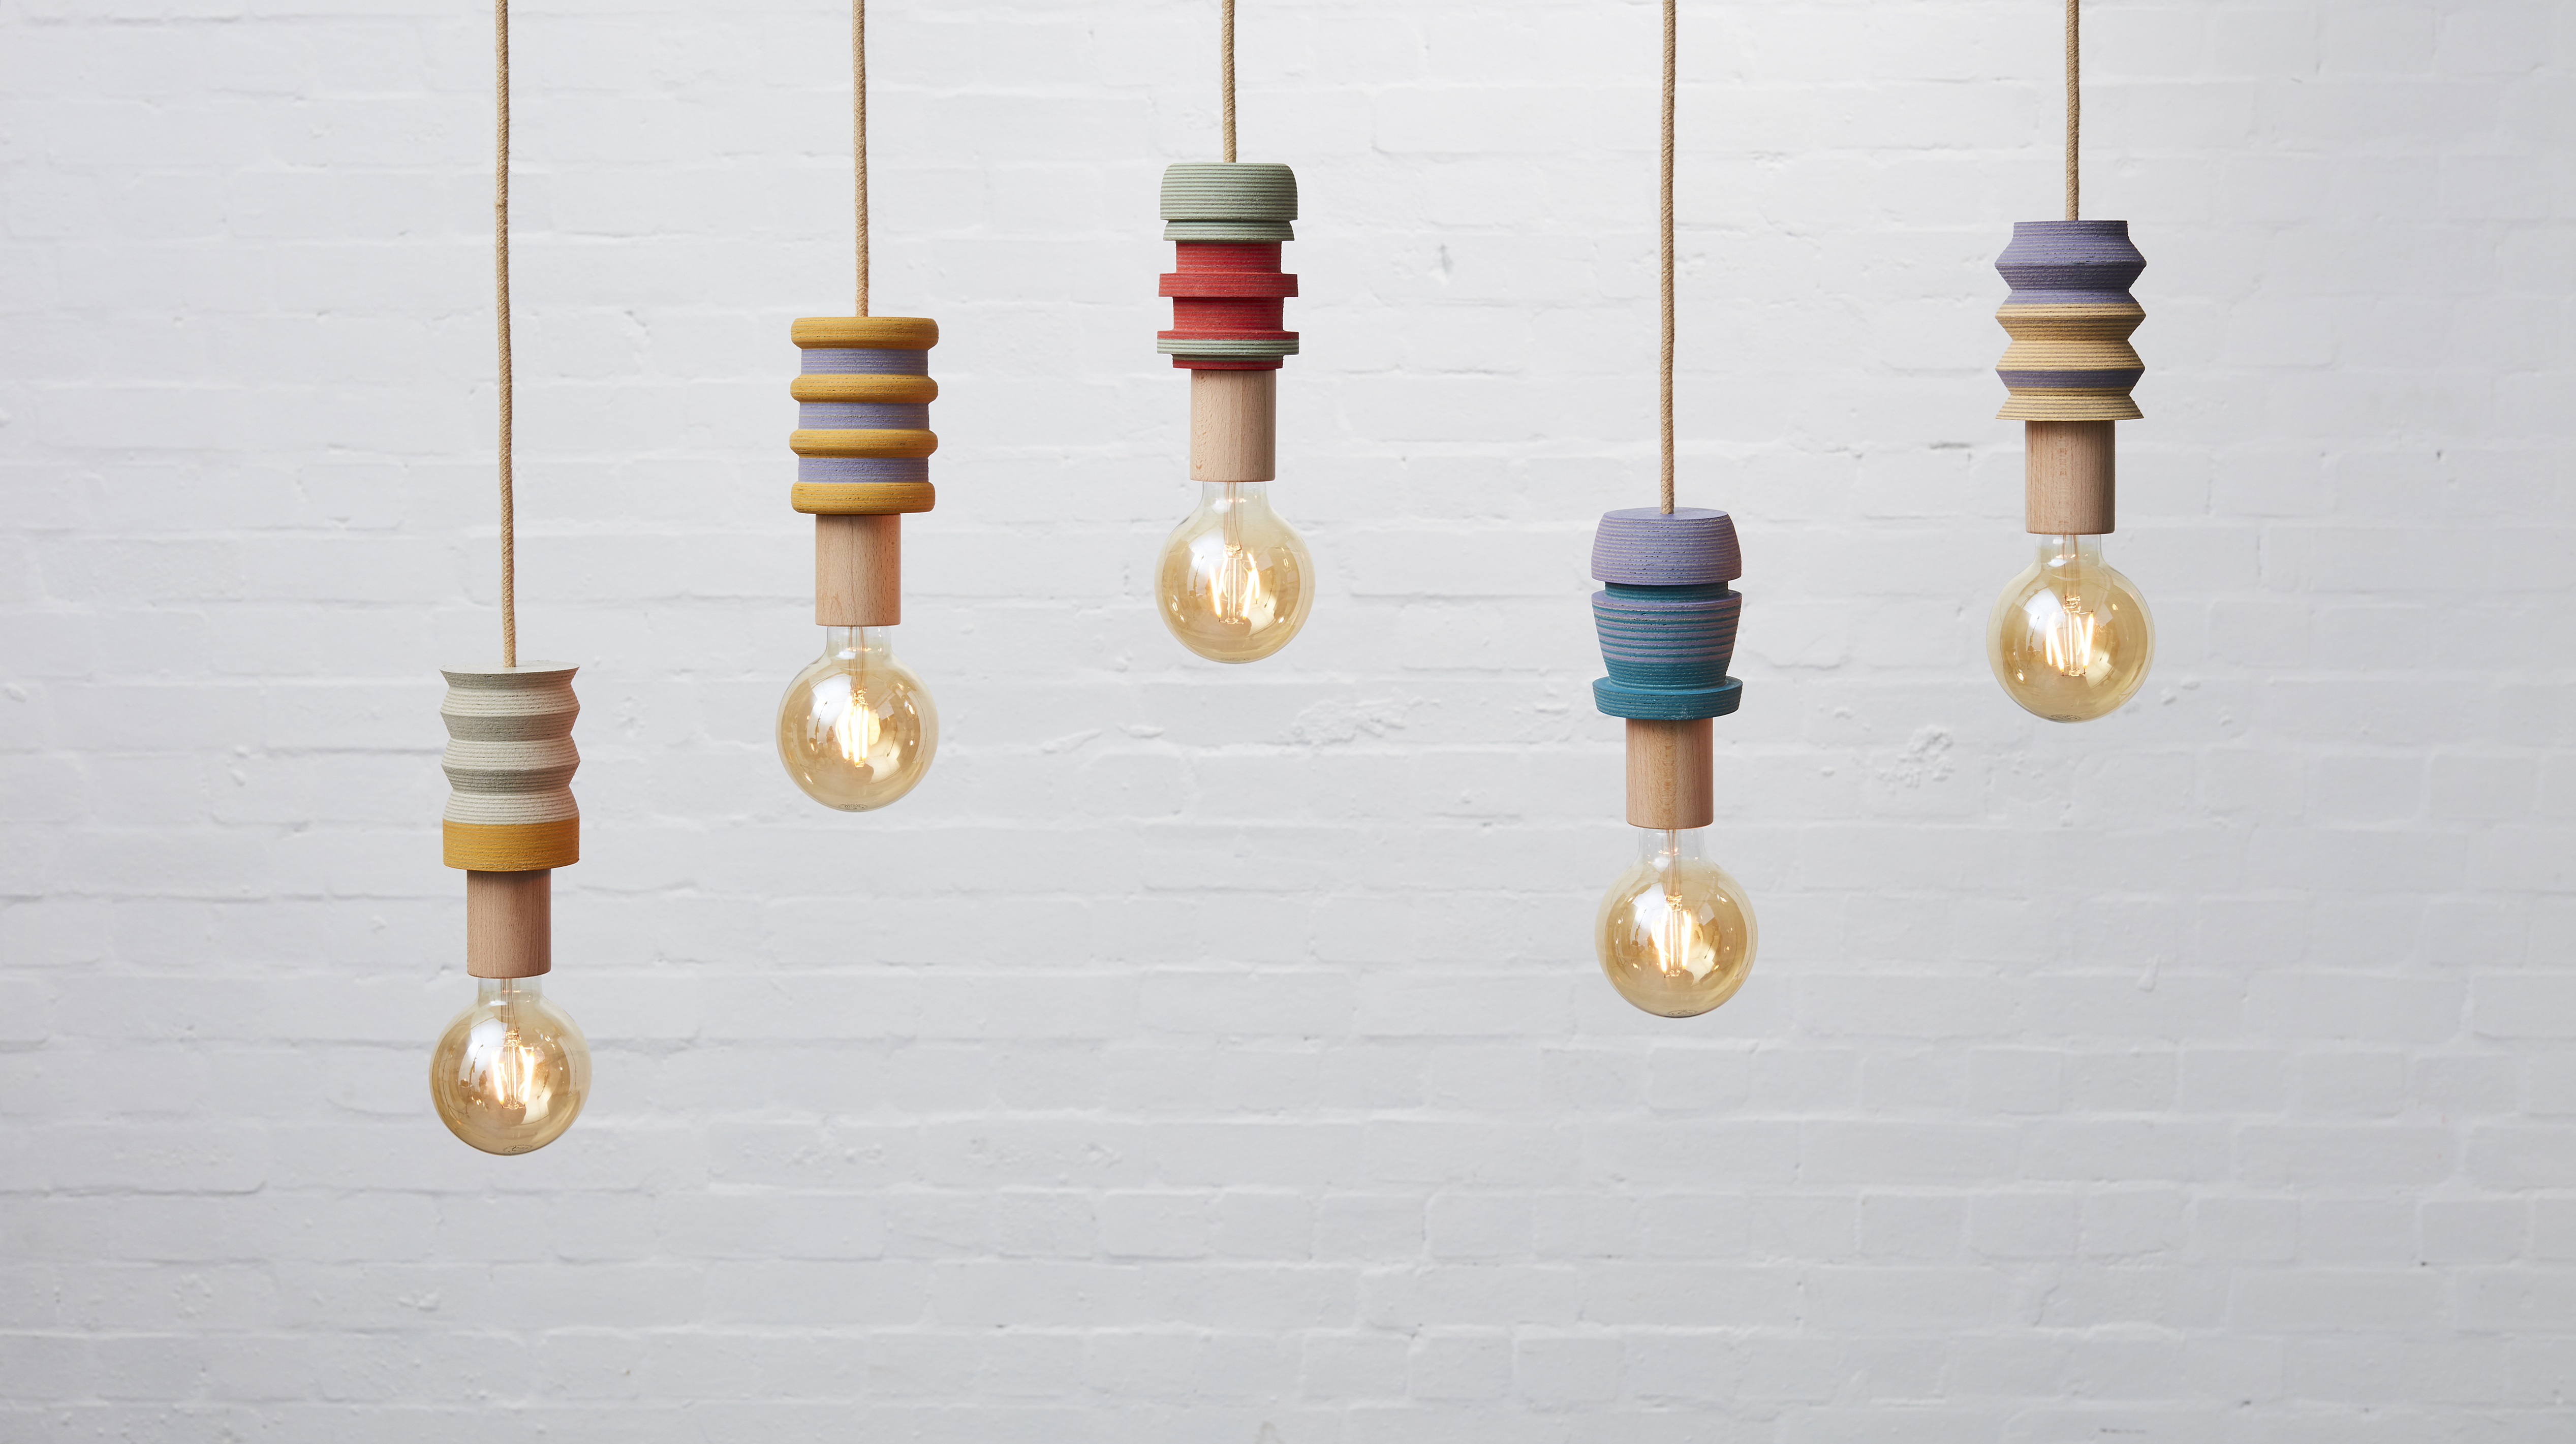 Lin pendant 3 - <p>The LIN pendant lights have been turned by hand on a lathe from blocks of laminated squares of Linoleum flooring. These playful and subtly vibrant pendants have been finished with a natural jute covered lighting cord, a solid wood E27 fitting bulb holder and a standard 3 pin plug. Statement yet welcoming lighting to brighten up interior or commercial spaces.</p>  | Matter of Stuff